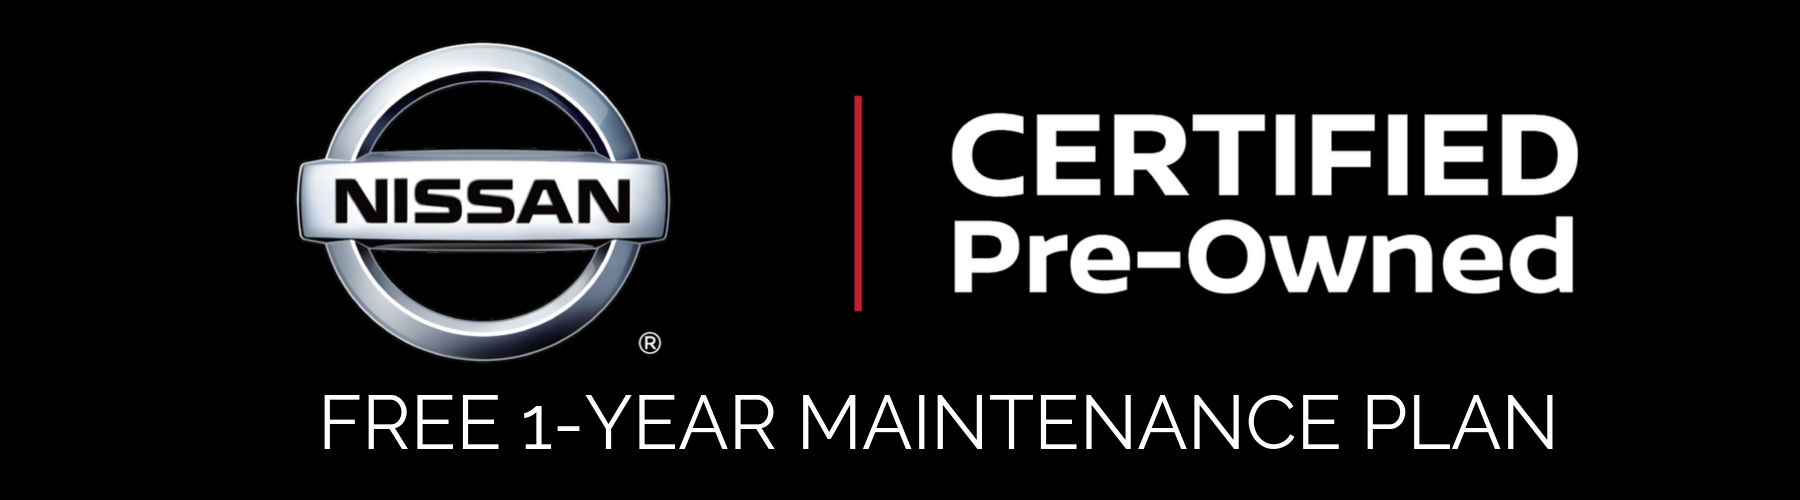 Nissan Certified Pre Owned >> Nissan Certified Pre Owned Vehicles Nissan Of Streetsboro